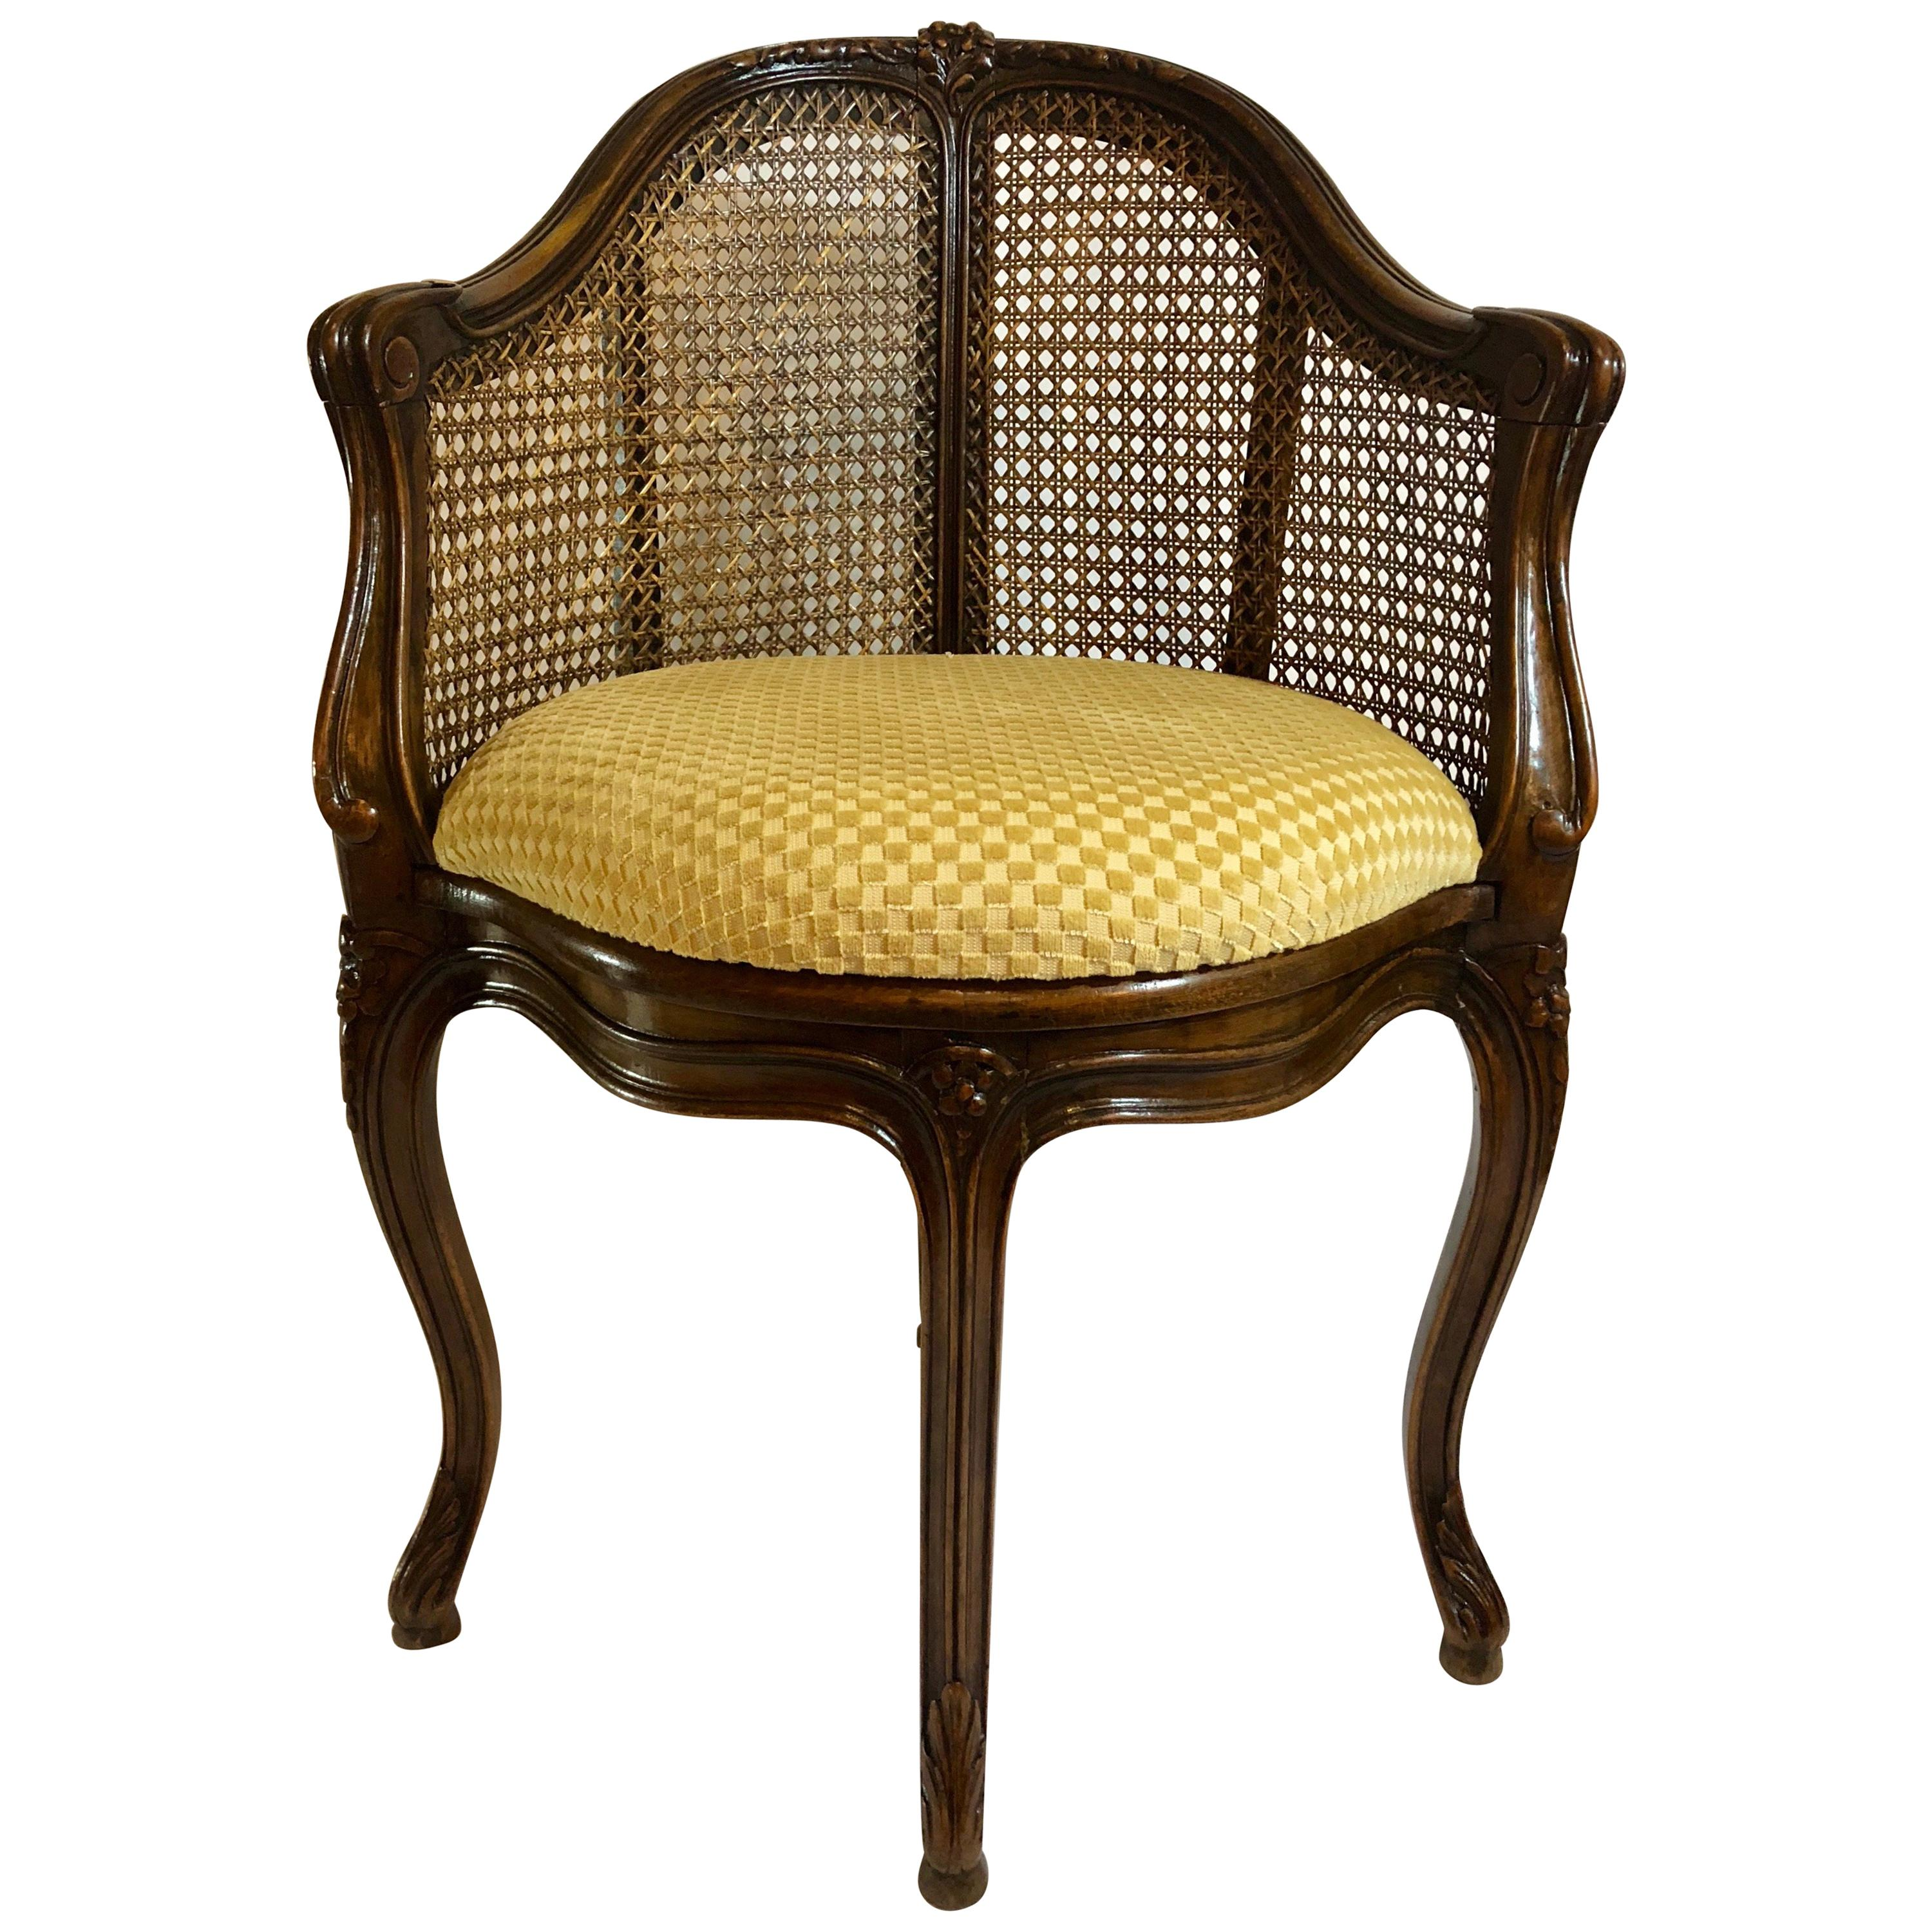 Antique French Cane Back 19th Century Corner Chair